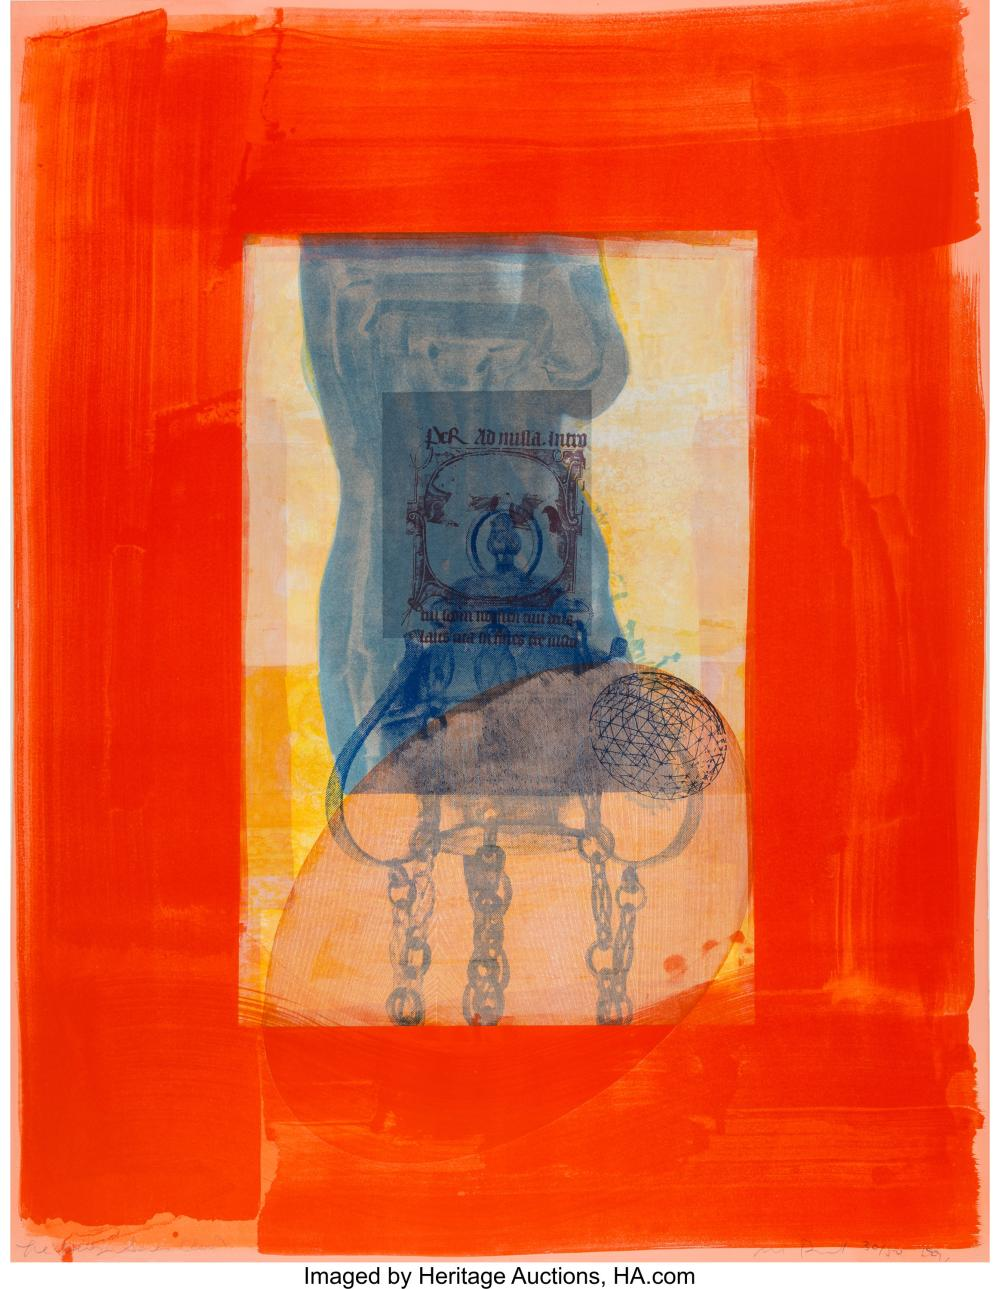 Lot 21326: Michael David (b. 1954) Red, from the Being Series, 1991 Lithograph in colors 4